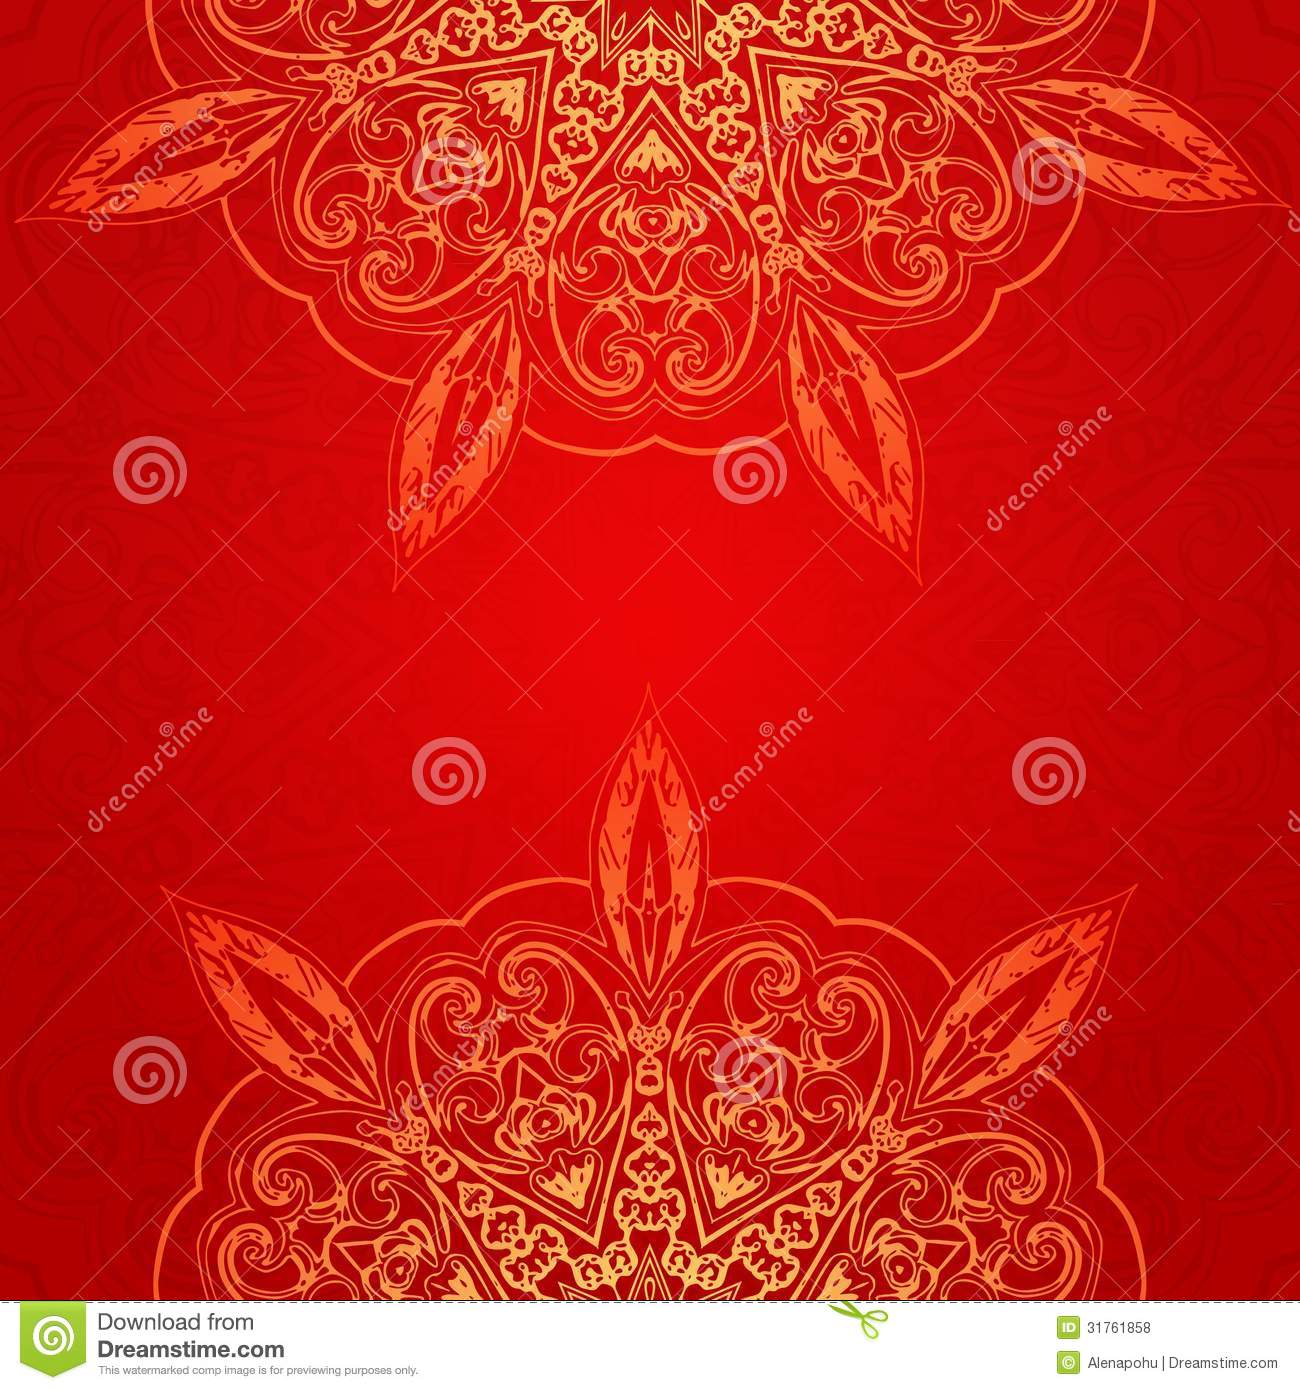 Vintage Ethnic Vector Ornament Mandala Background Stock